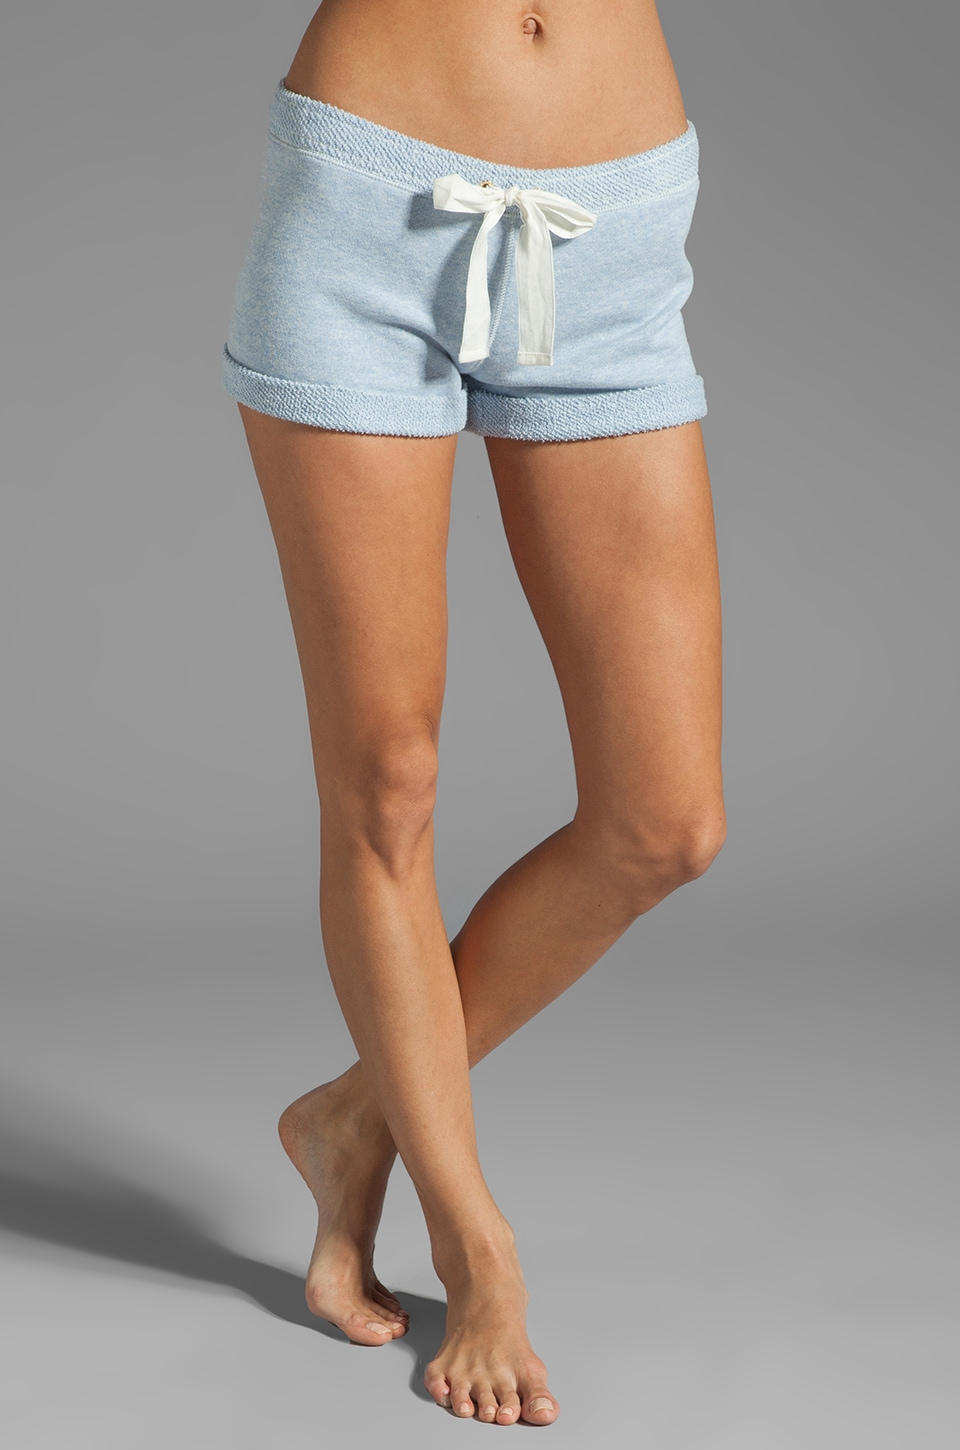 Juicy Couture Heathered Amalfi Terry Short in Heather Blue